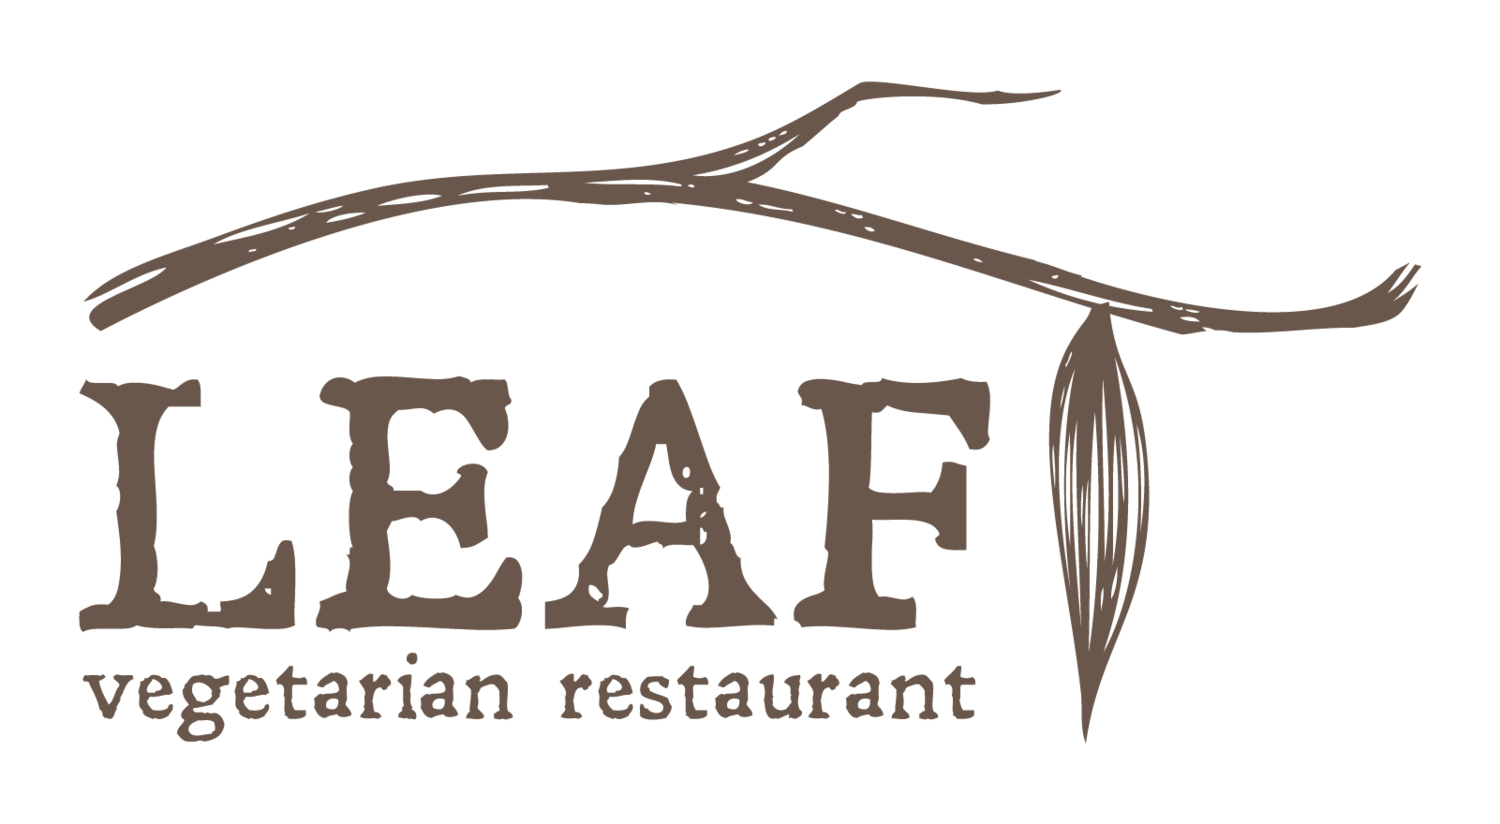 Leaf Vegetarian Restaurant